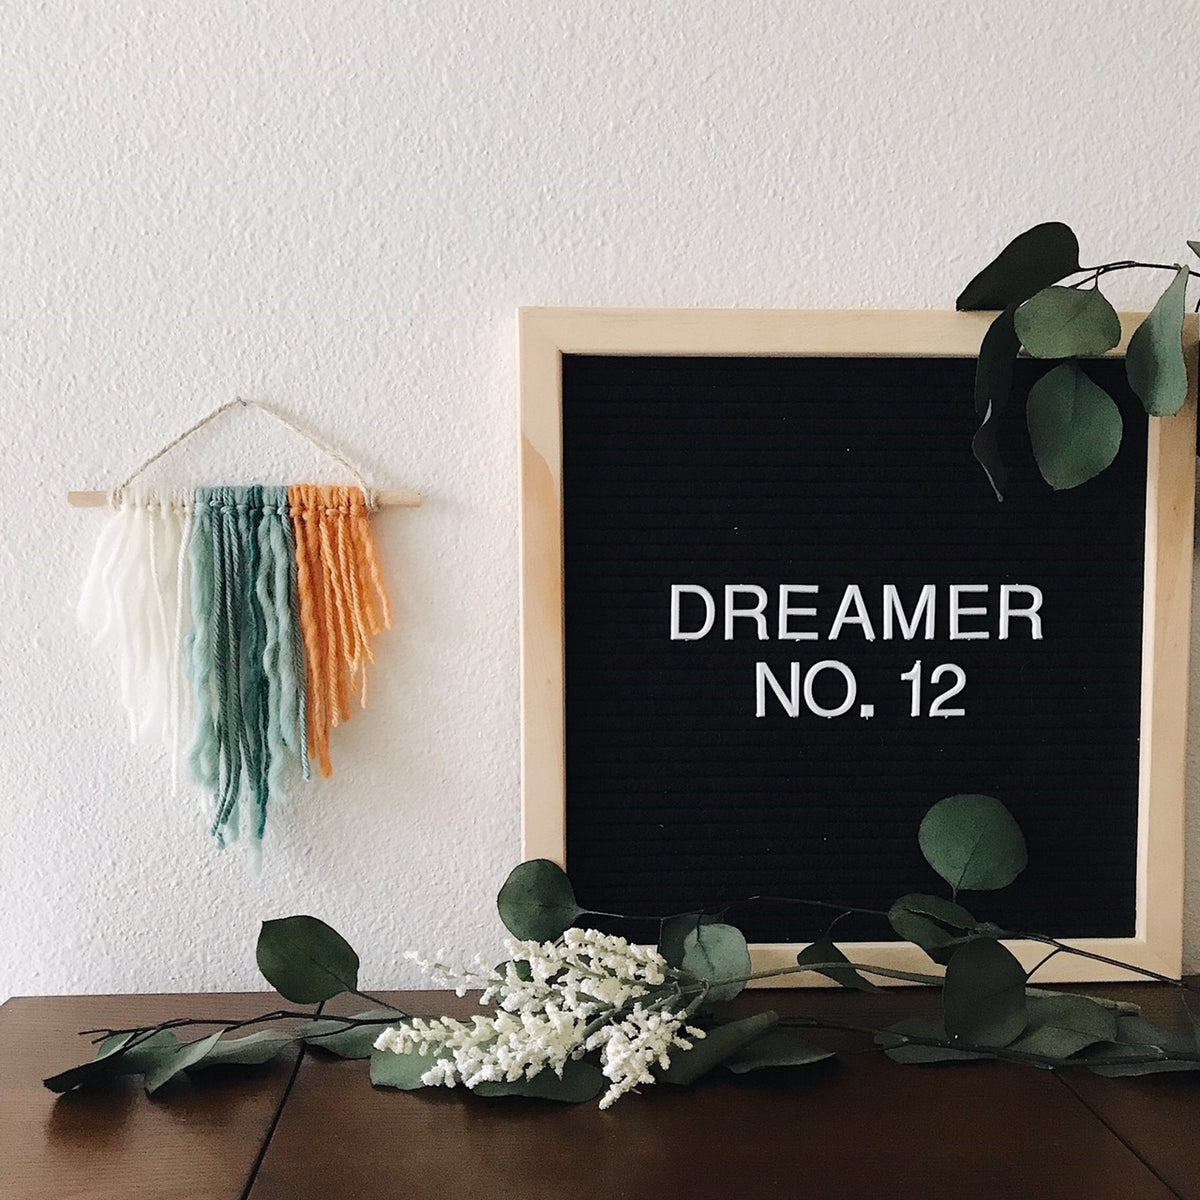 Dreamer No. 12 | 100 Days of Dreamers